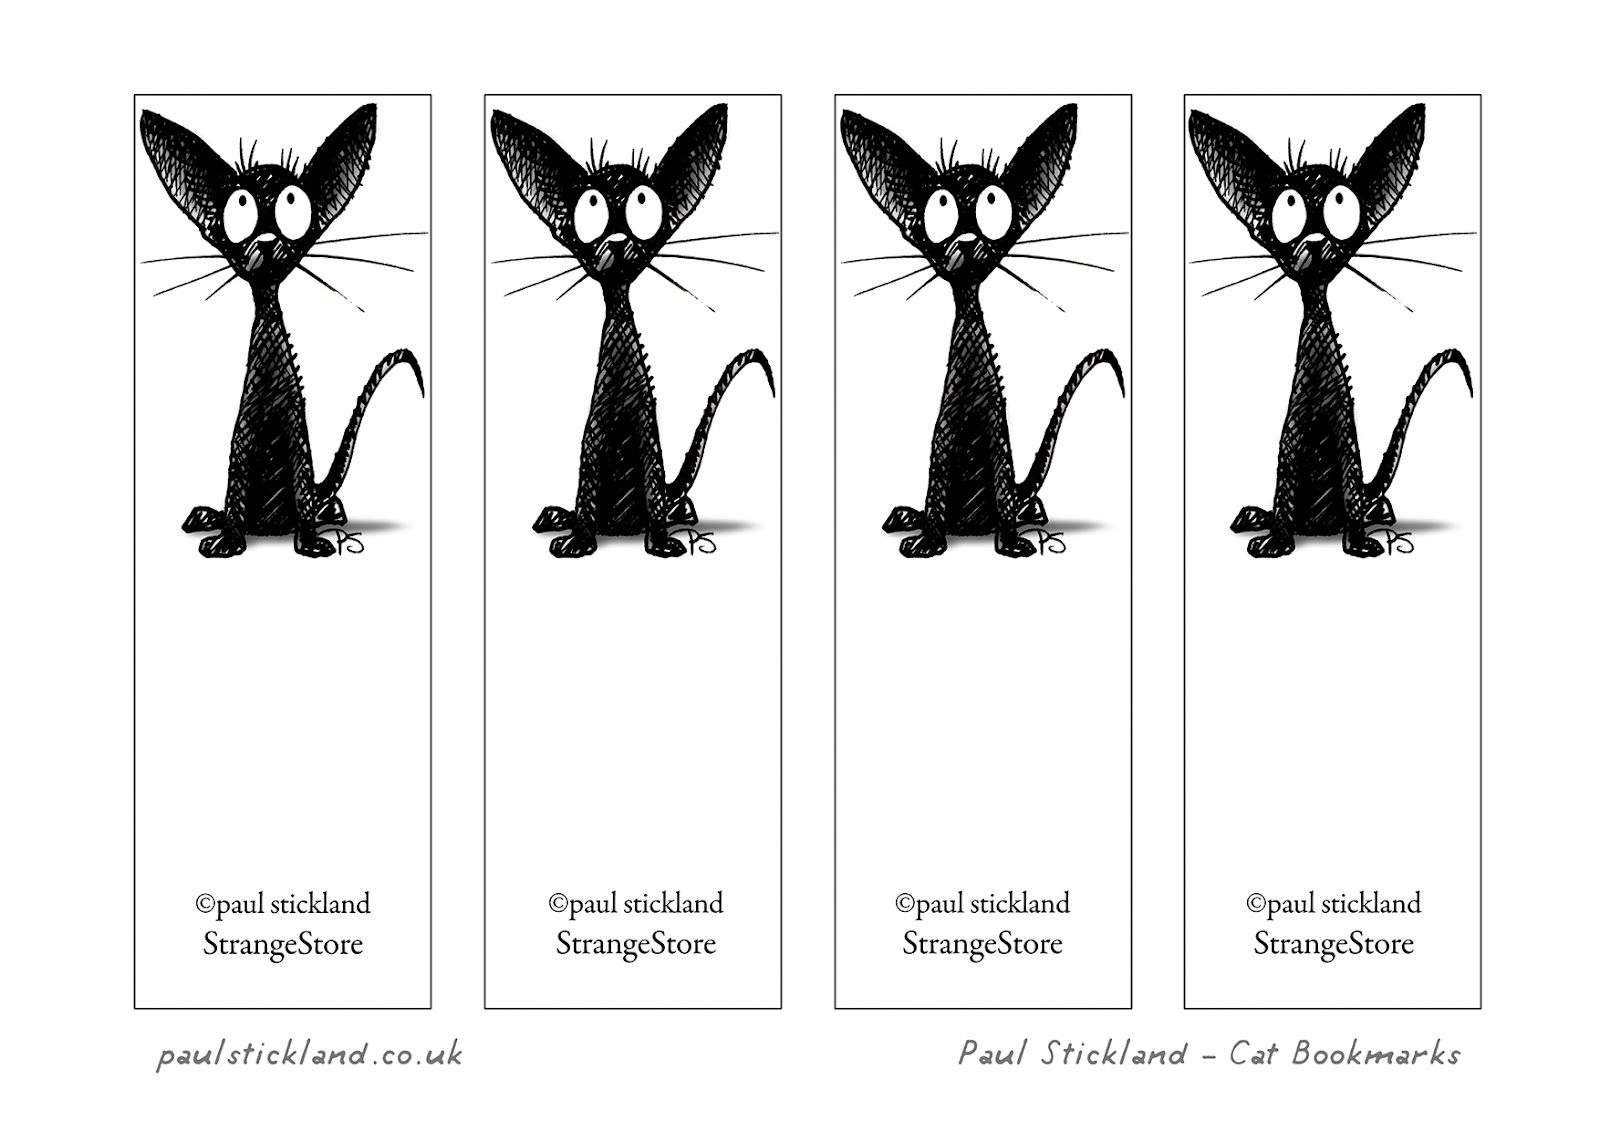 paul stickland blog: free black cat bookmarks!